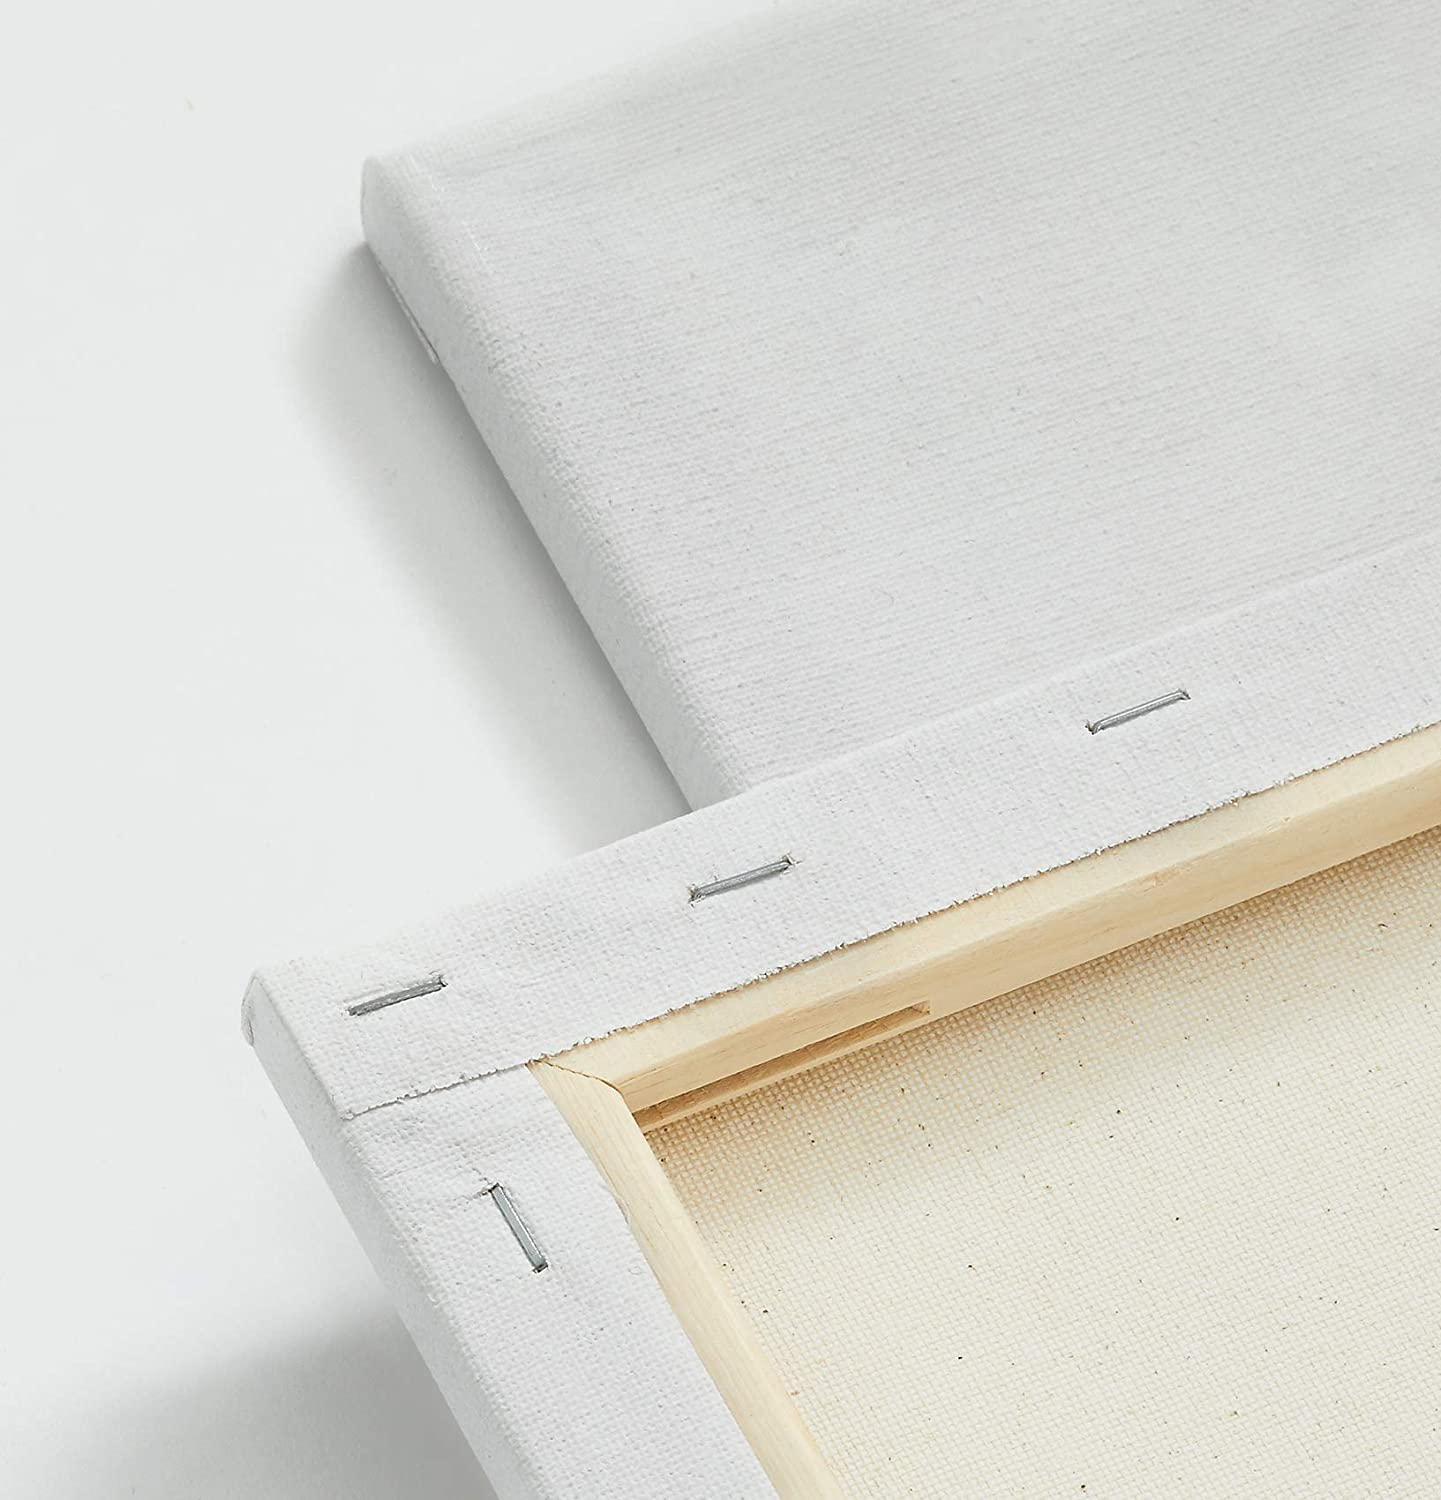 miniature 41 - Americanflat Stretched Canvas in White 100% Cotton Wooden Frames & Acid Free